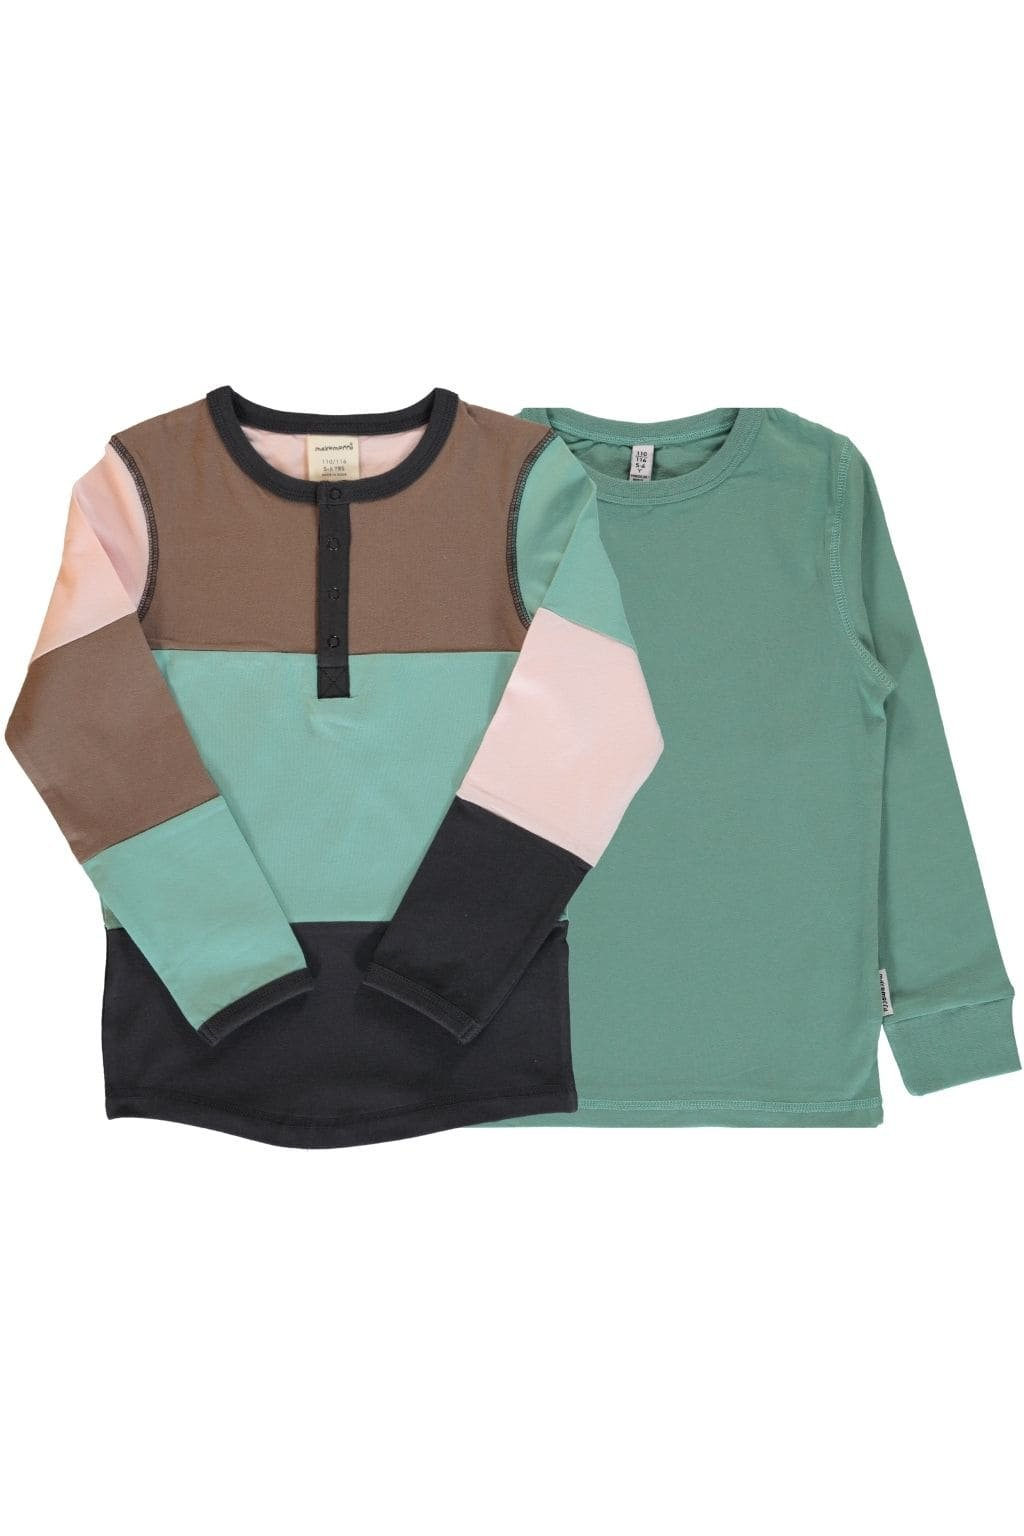 top ls pale army multi forest (1)